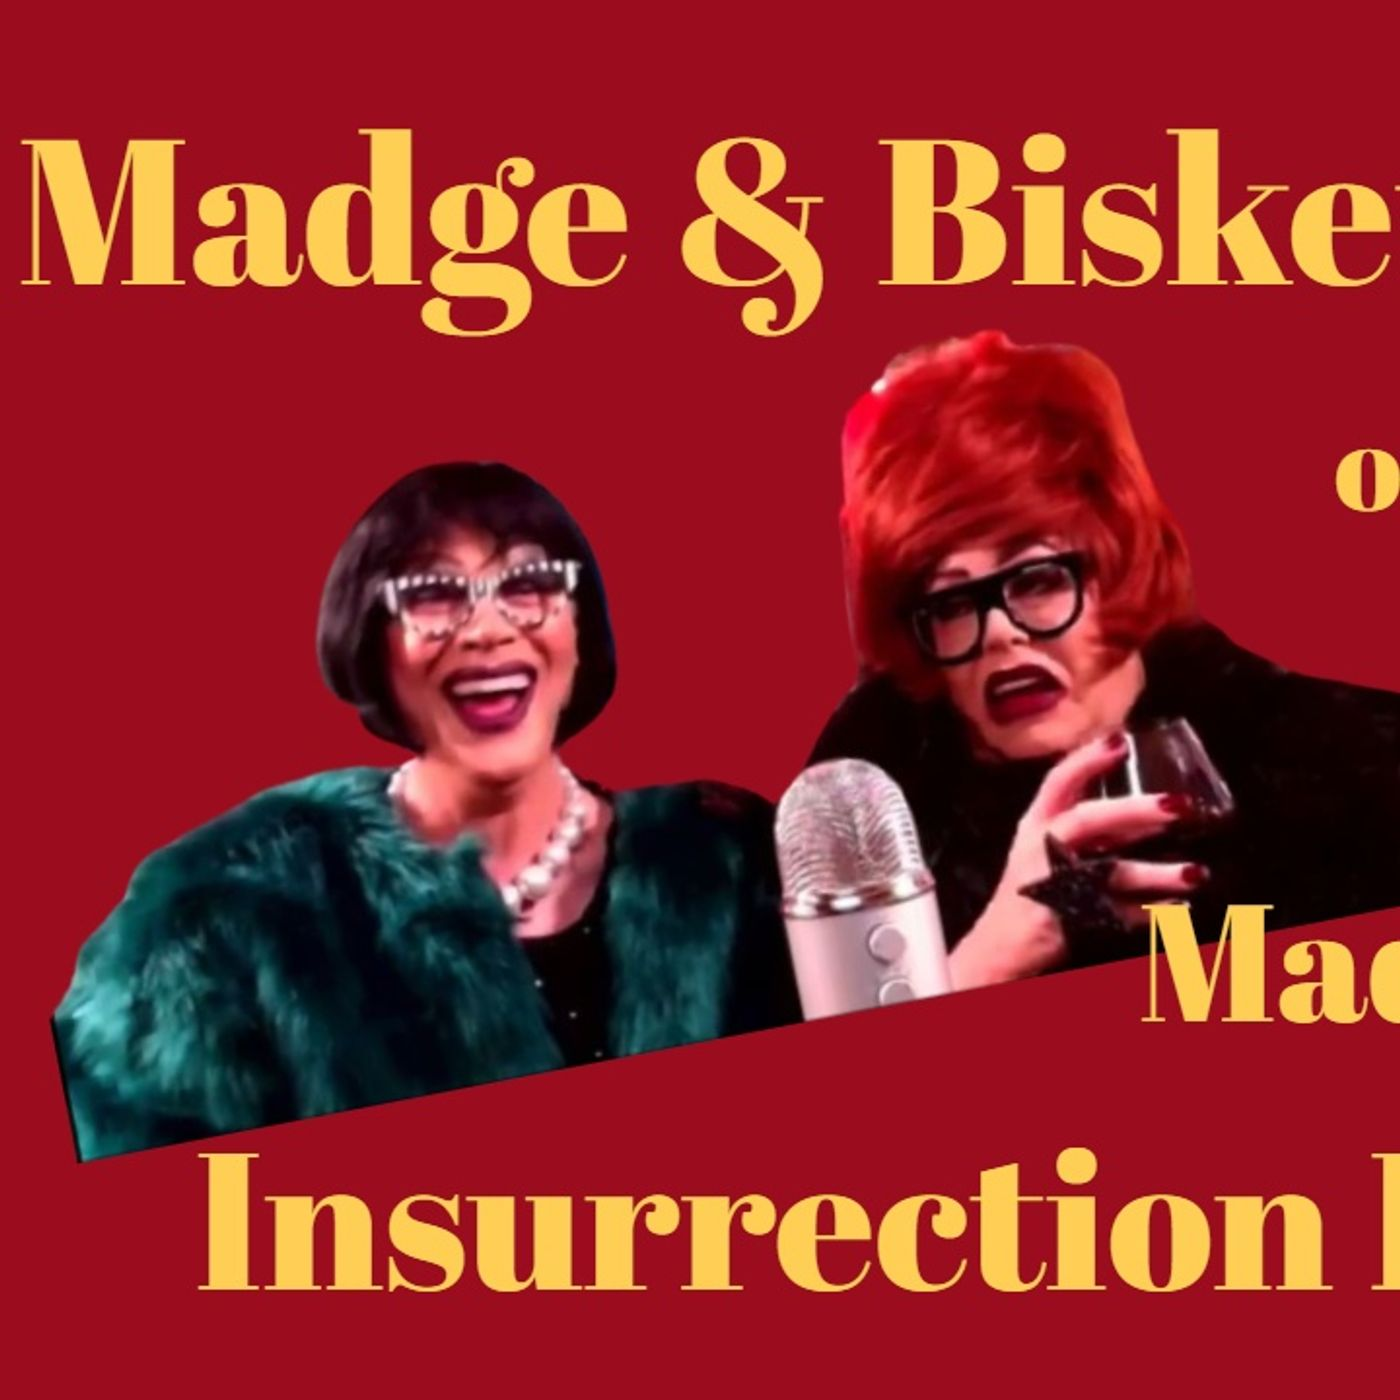 Ball Drops and Insurrection Fashion with guests Madge & Bisket